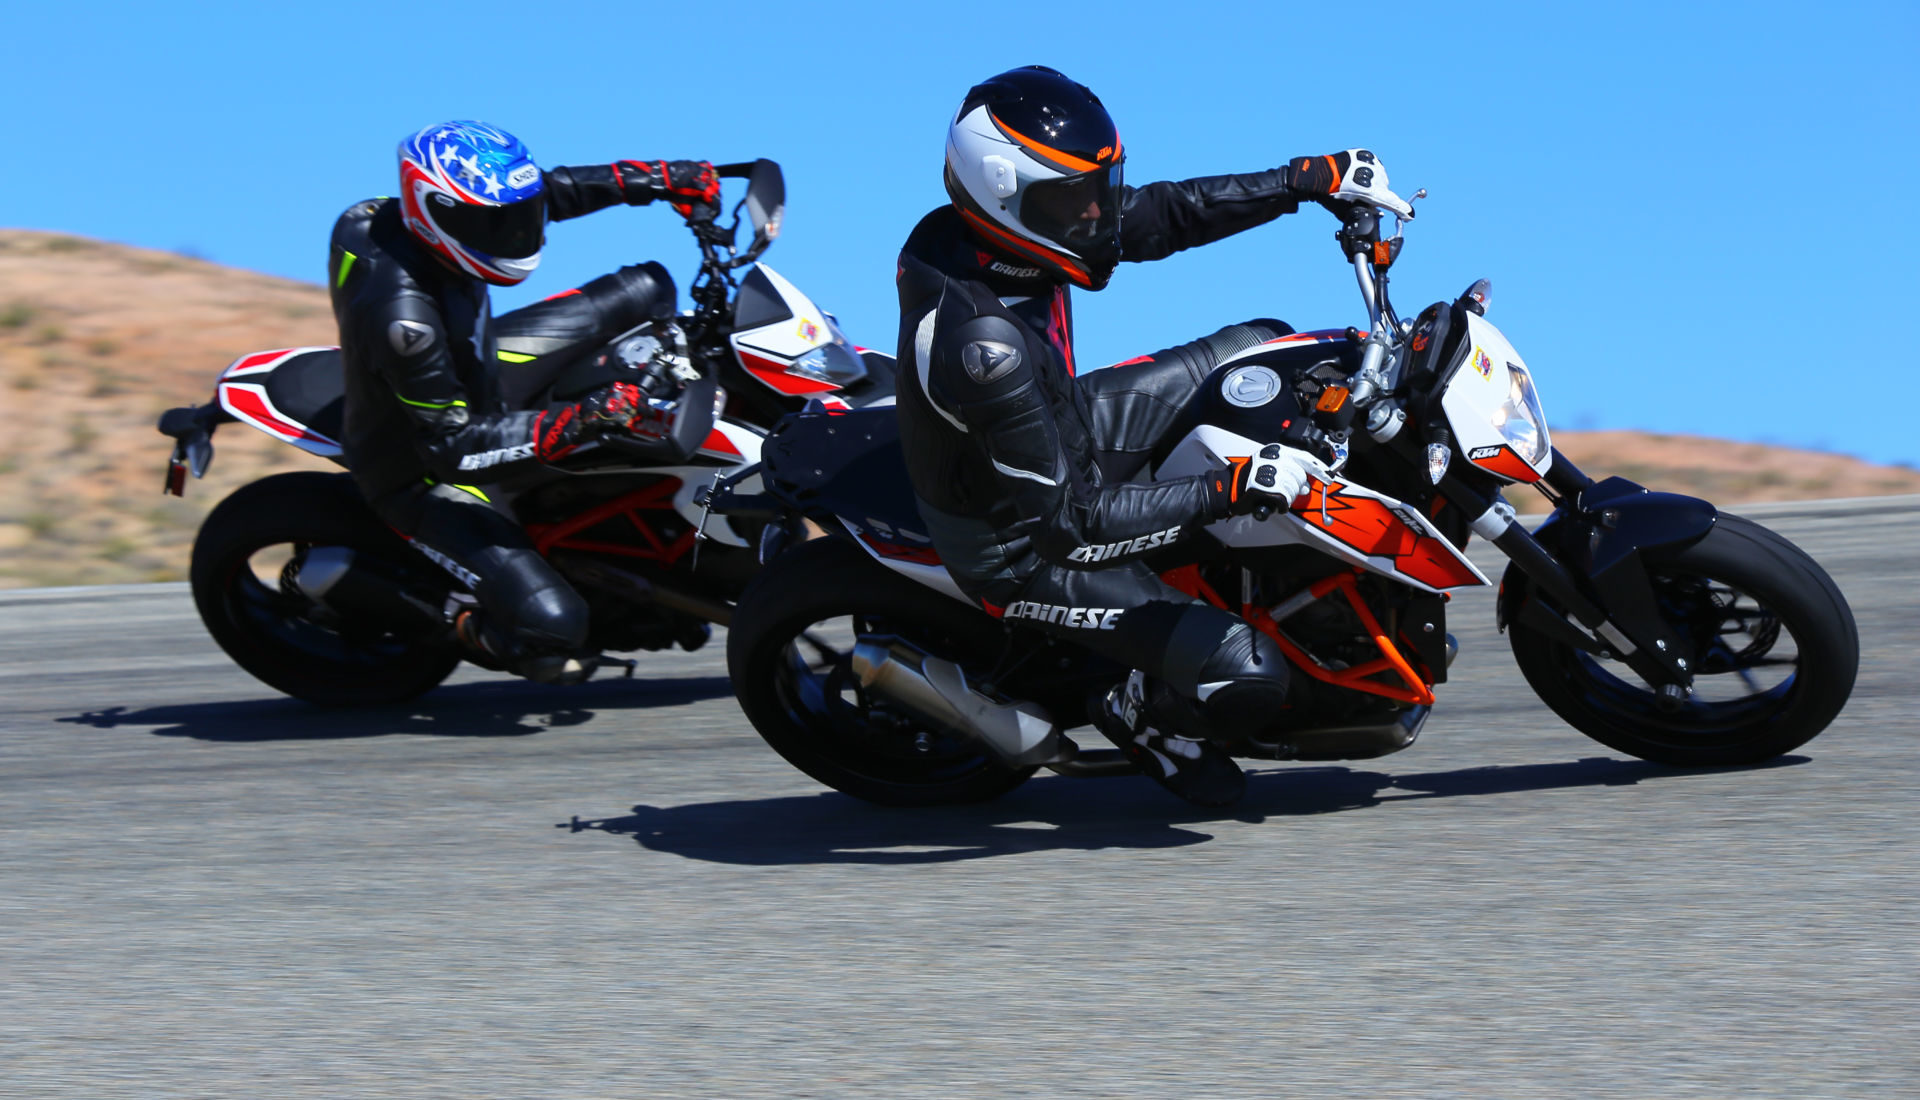 Riding motorcycles and other powersports-related activities amount to a $9.1 billion industry. Photo by etechphoto.com, courtesy of CLASS Motorcycle Schools.